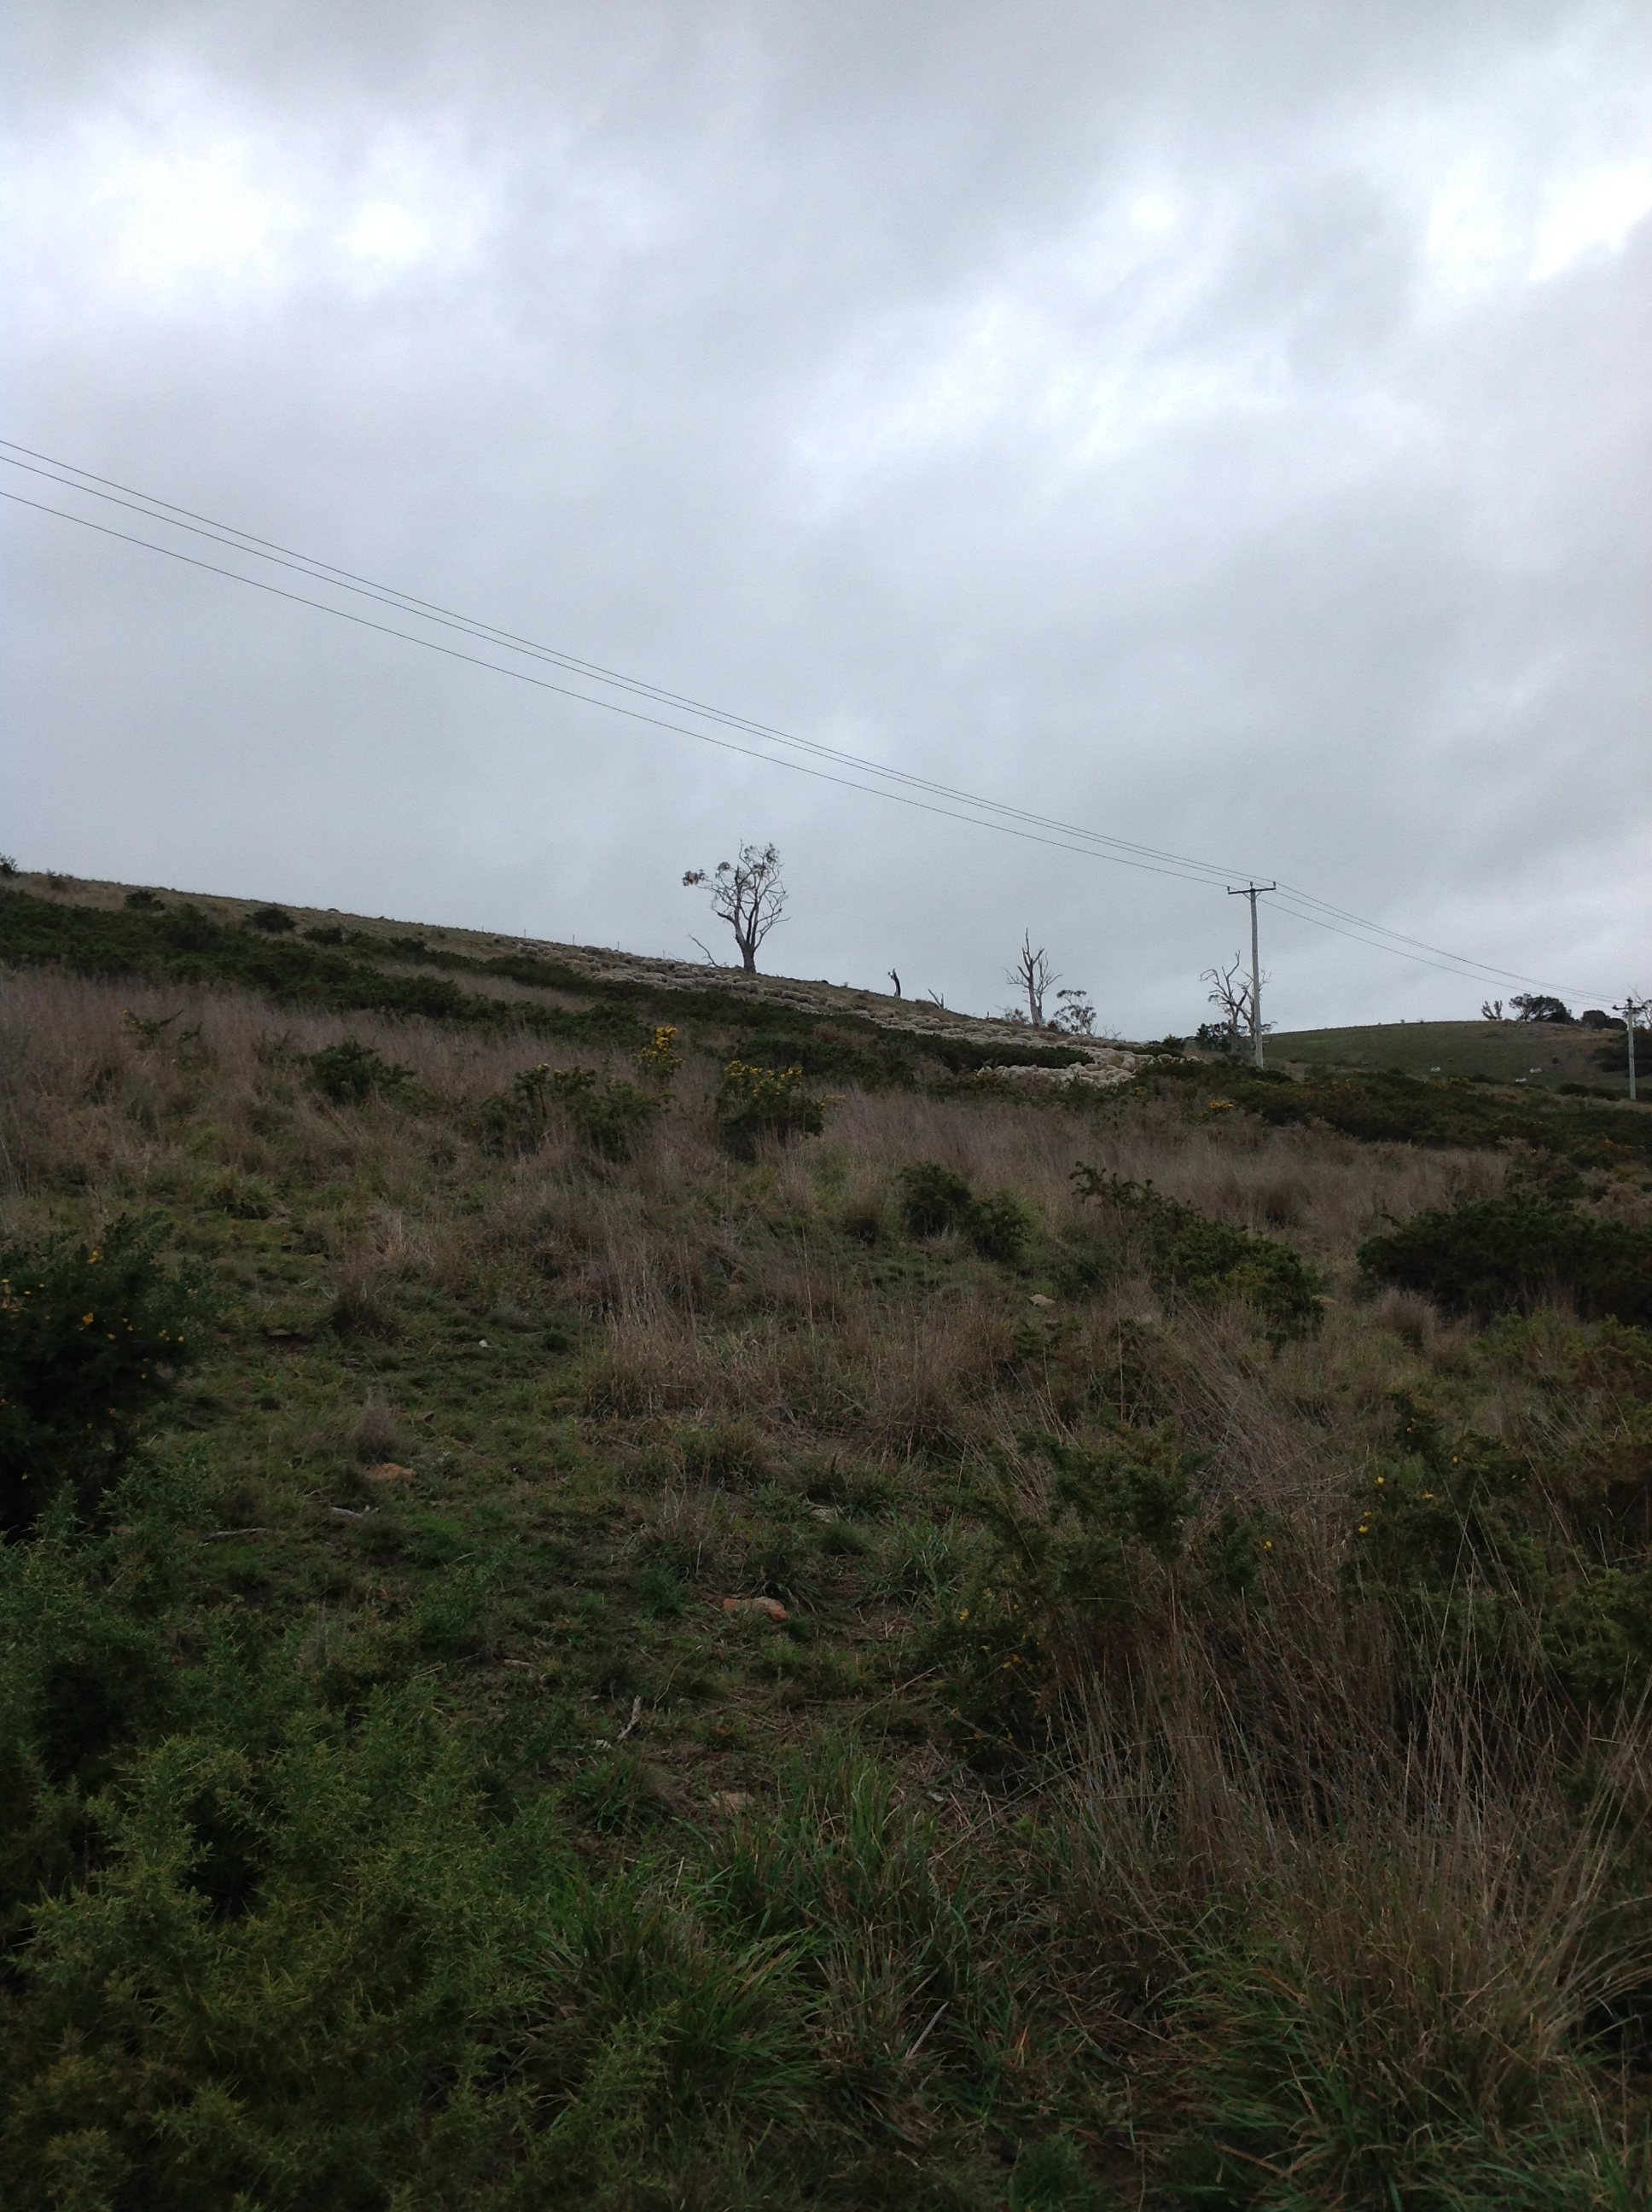 P4: Winding their way through the gorse and up the last hill.